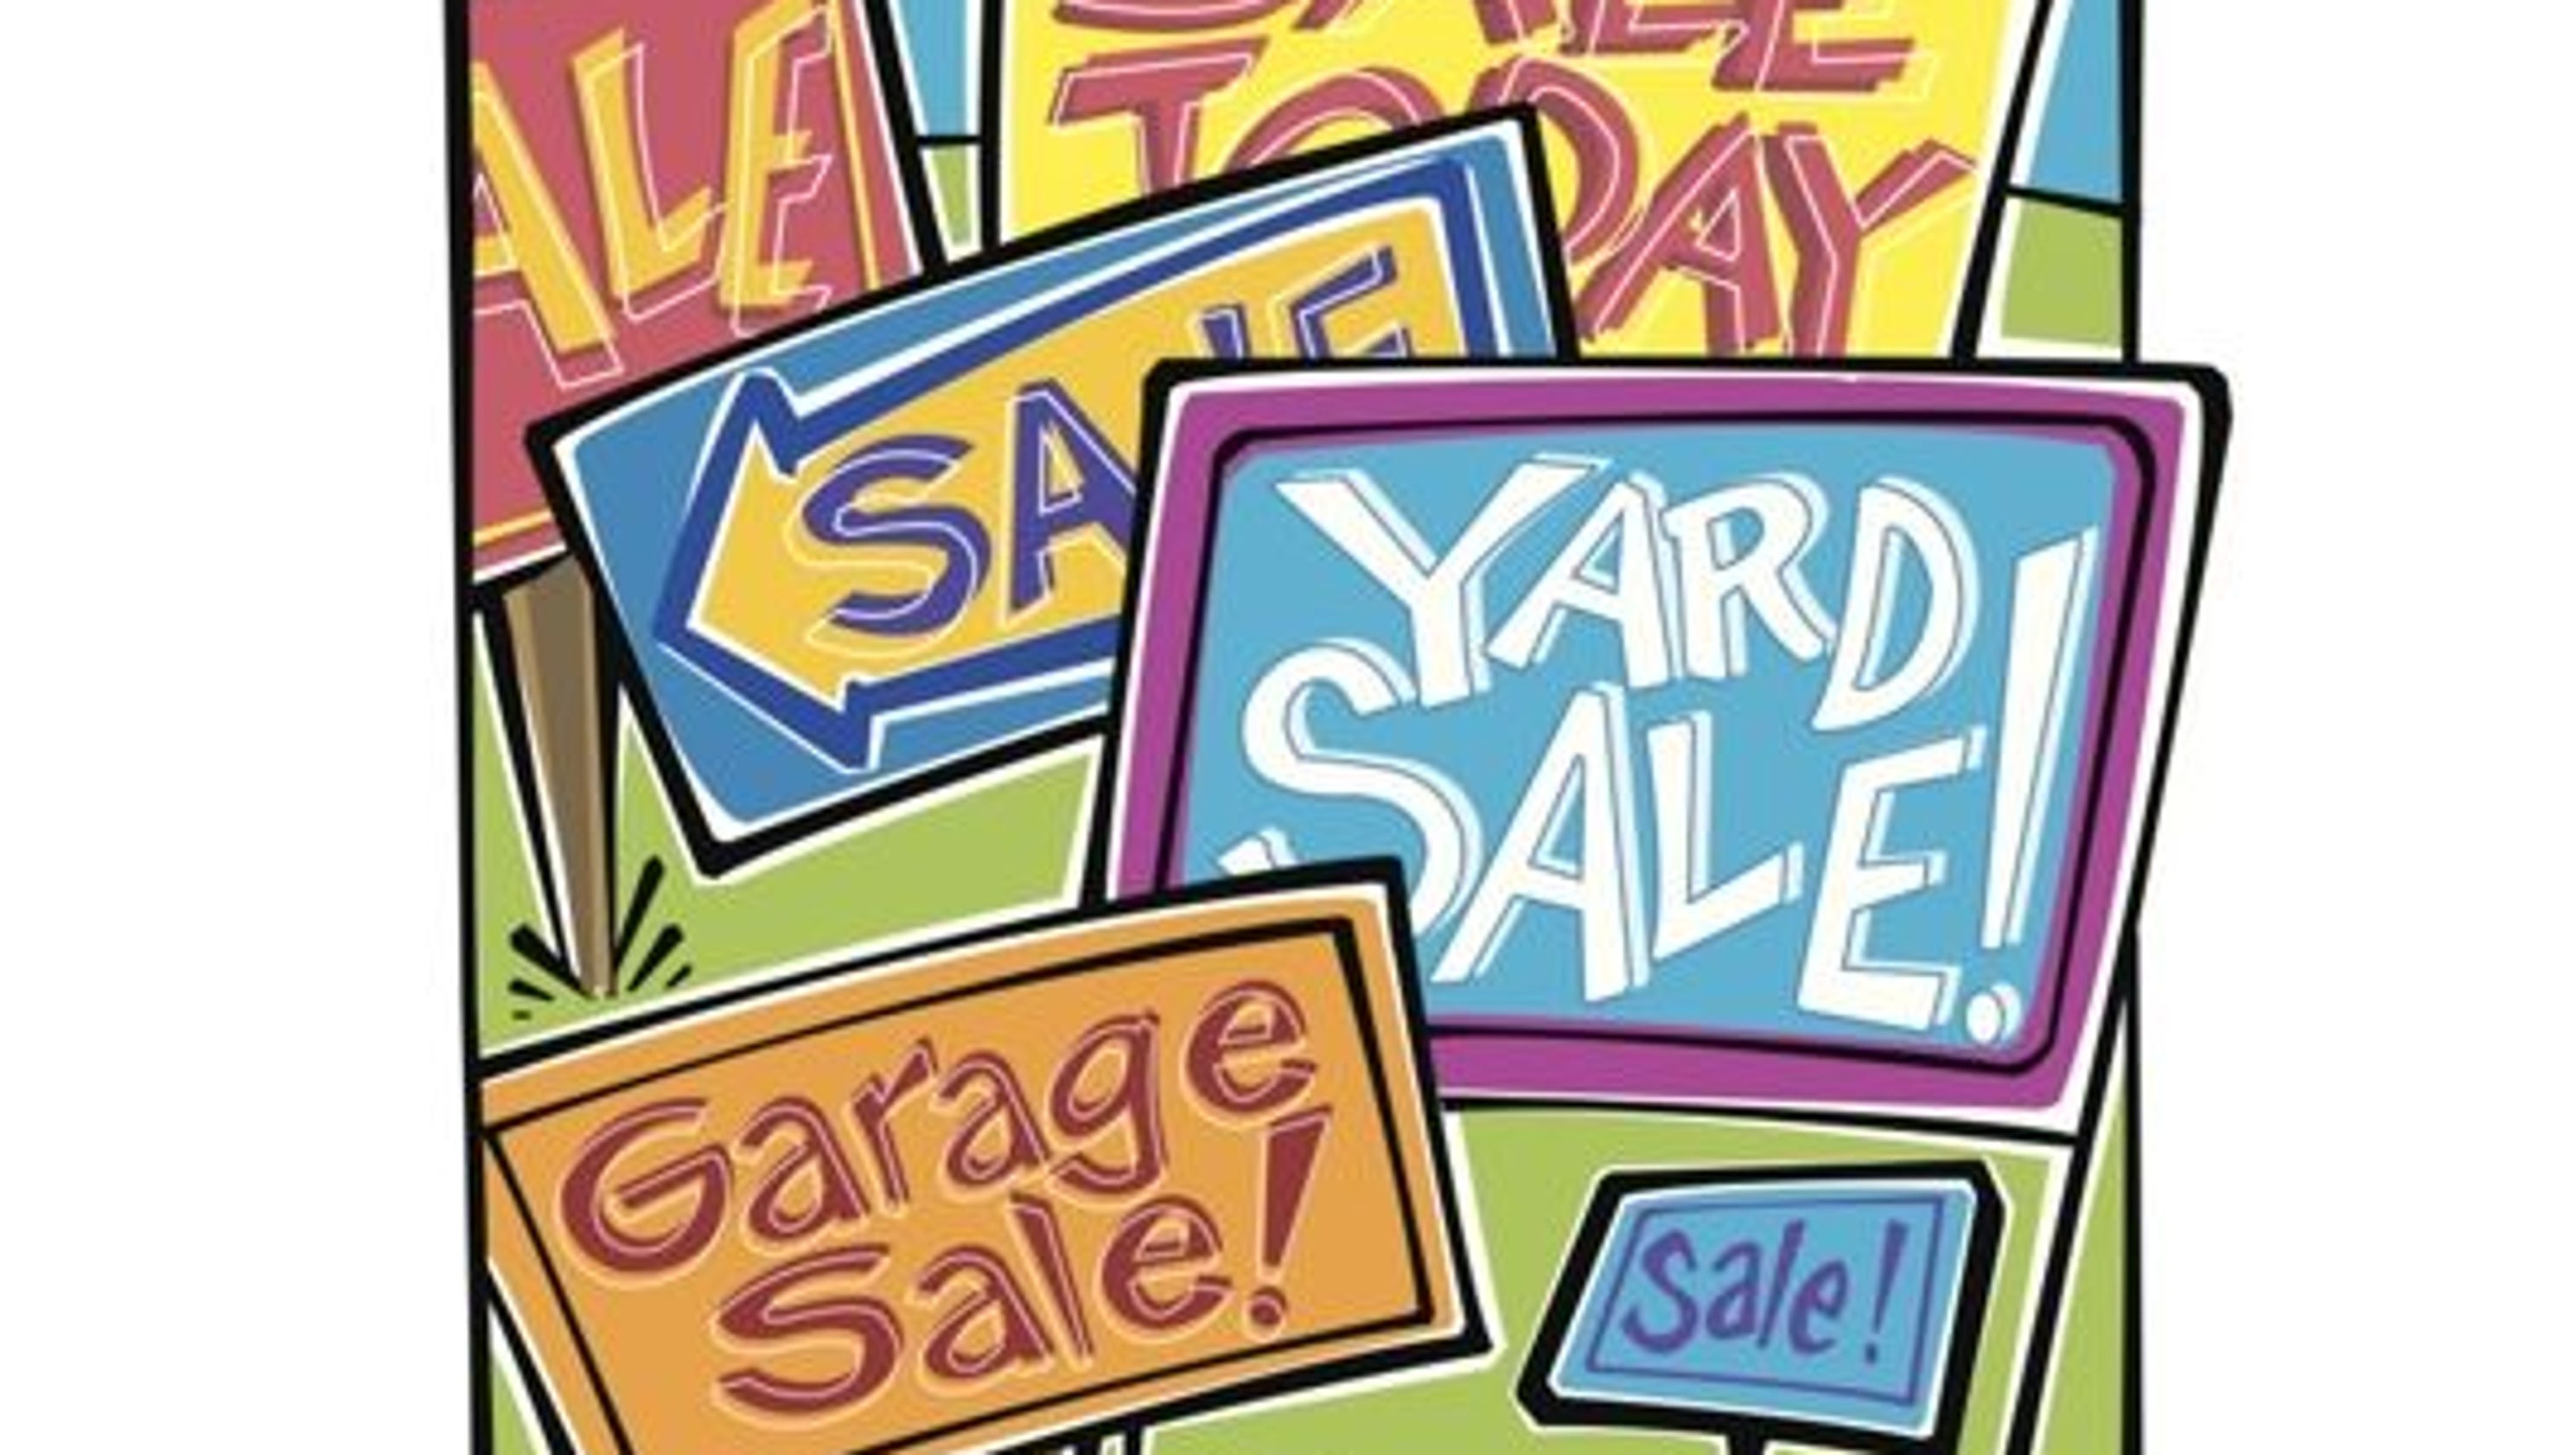 Free garage sale ad package